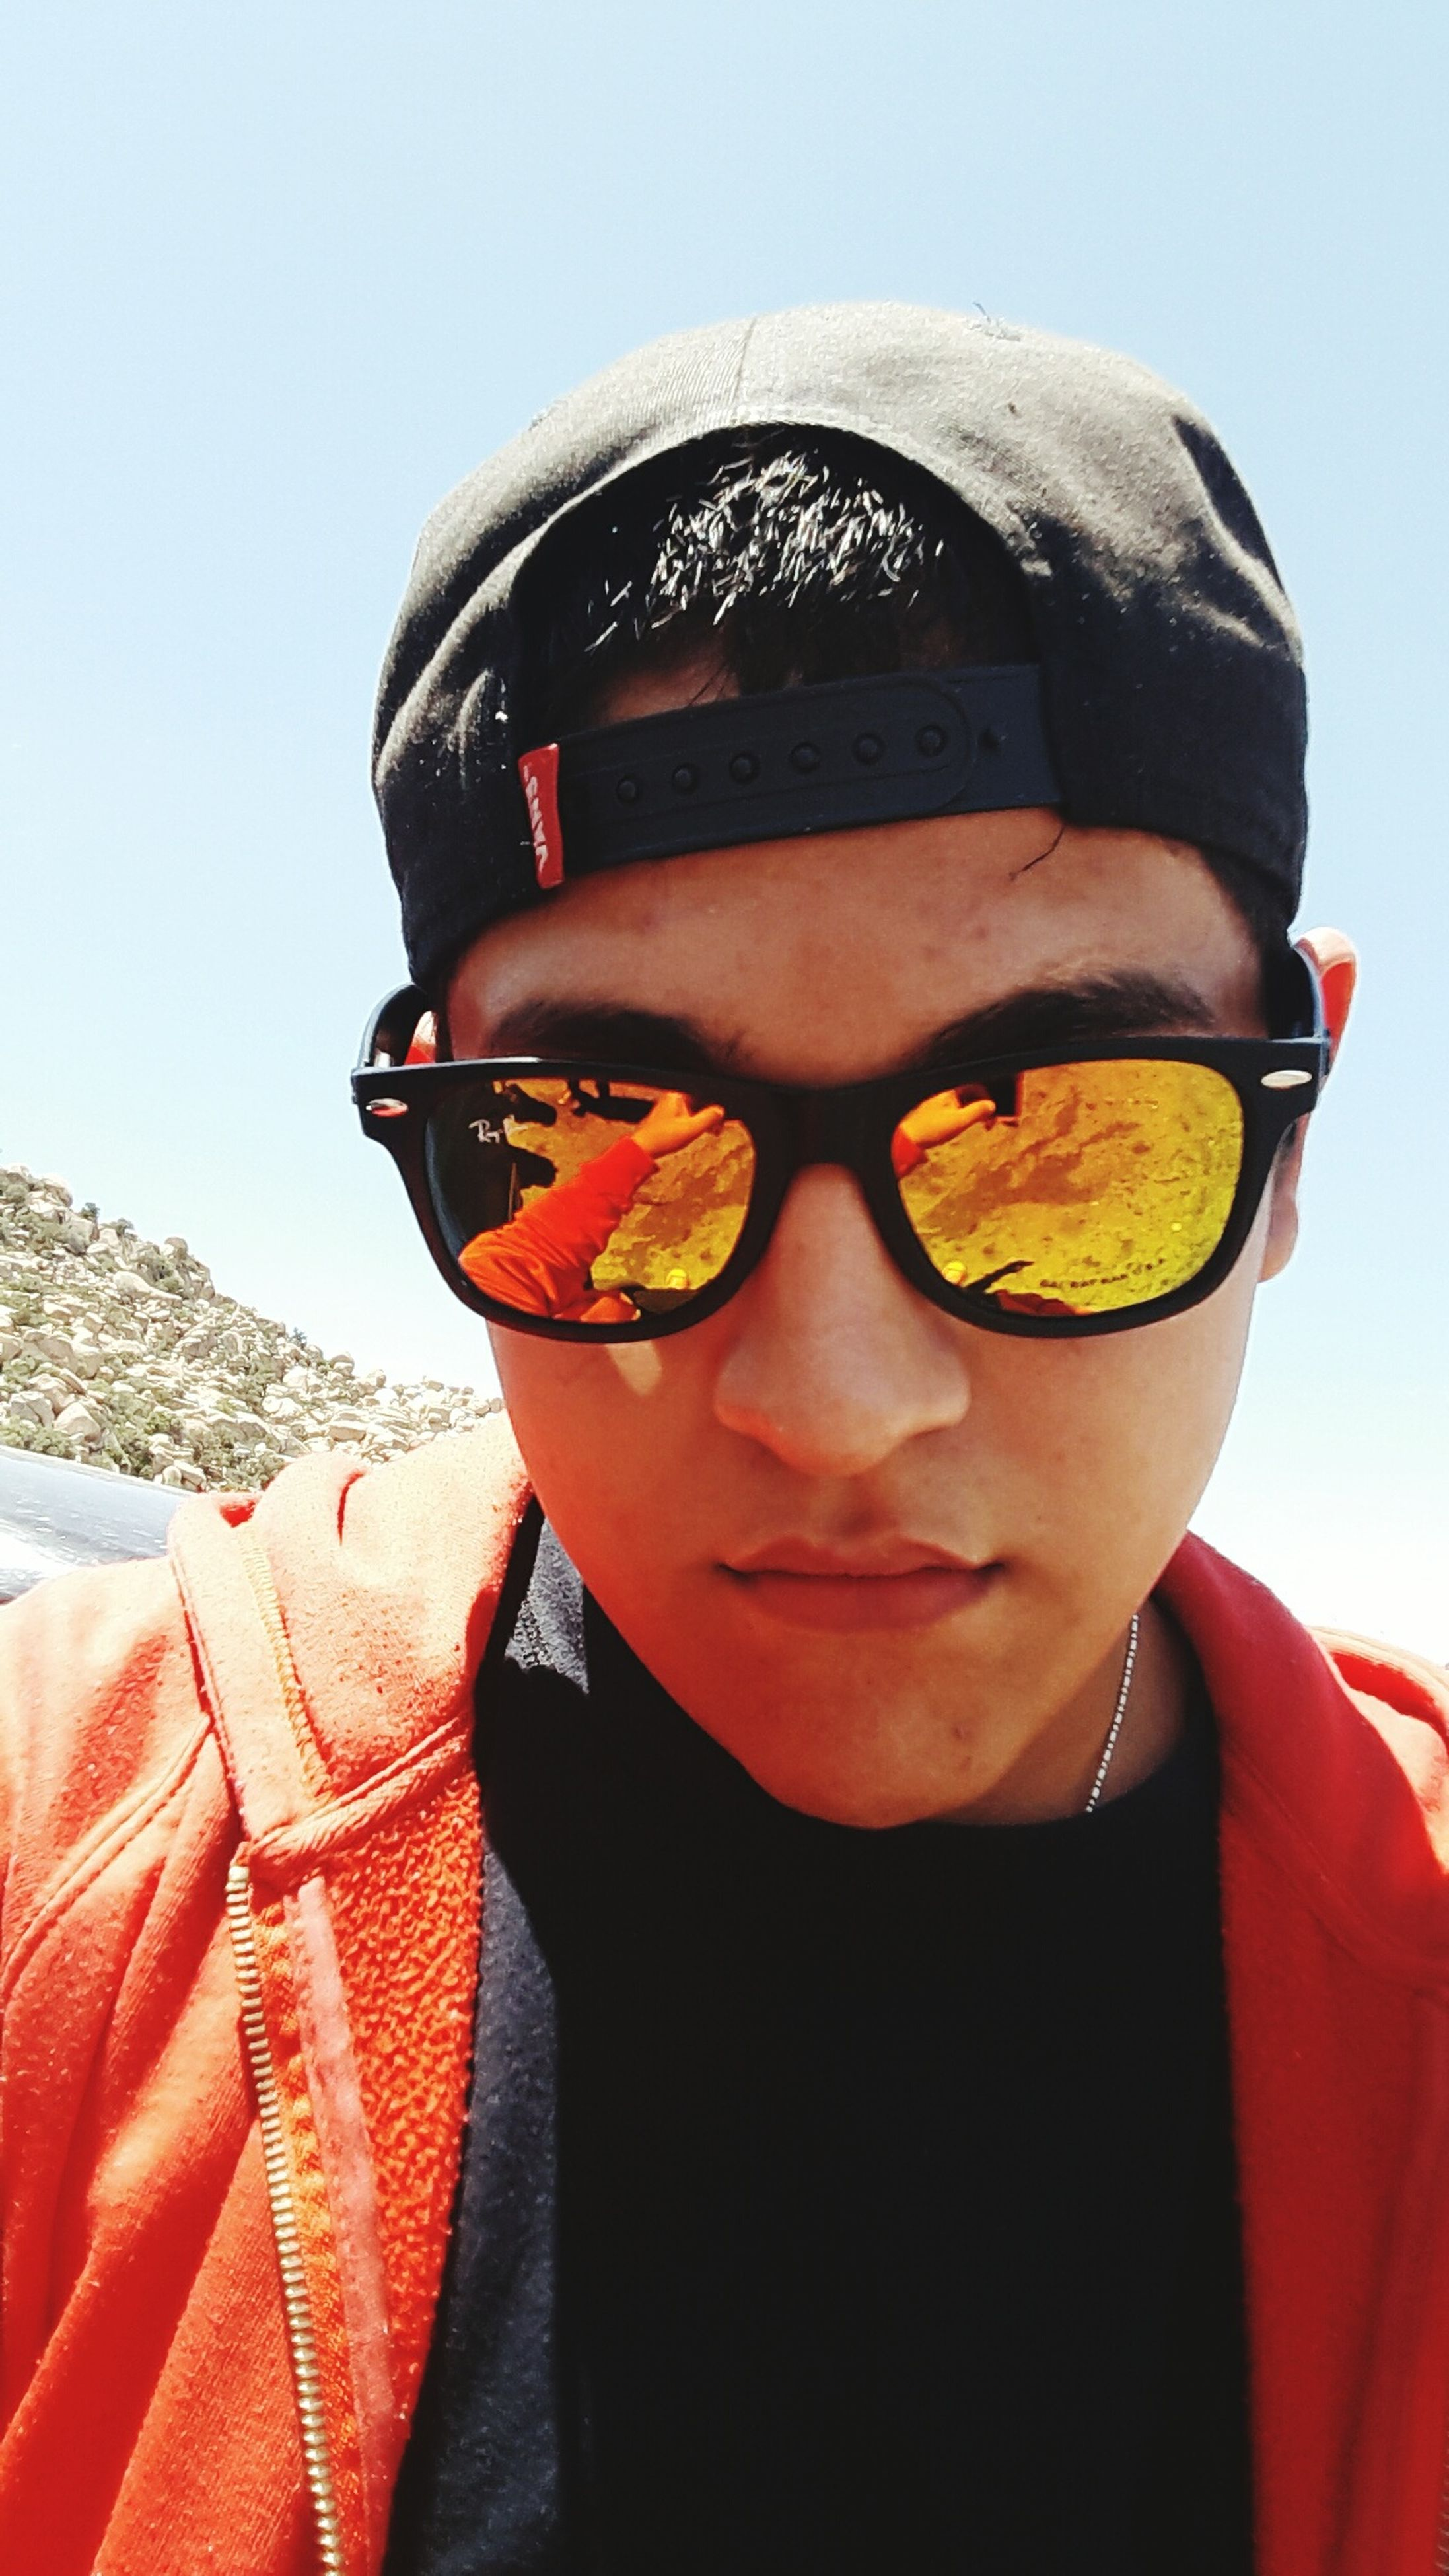 lifestyles, leisure activity, sunglasses, casual clothing, front view, looking at camera, young adult, portrait, person, headshot, young men, holding, hat, clear sky, cold temperature, close-up, warm clothing, cap